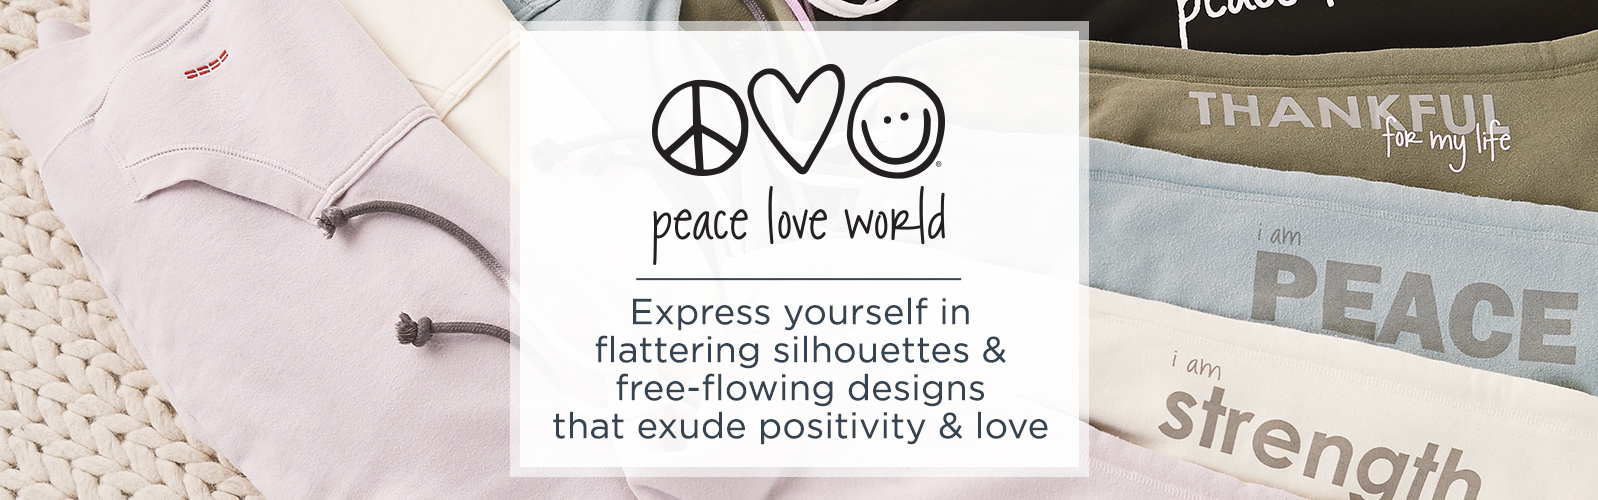 Peace Love World - Express yourself in flattering silhouettes & free-flowing designs that exude positivity & love